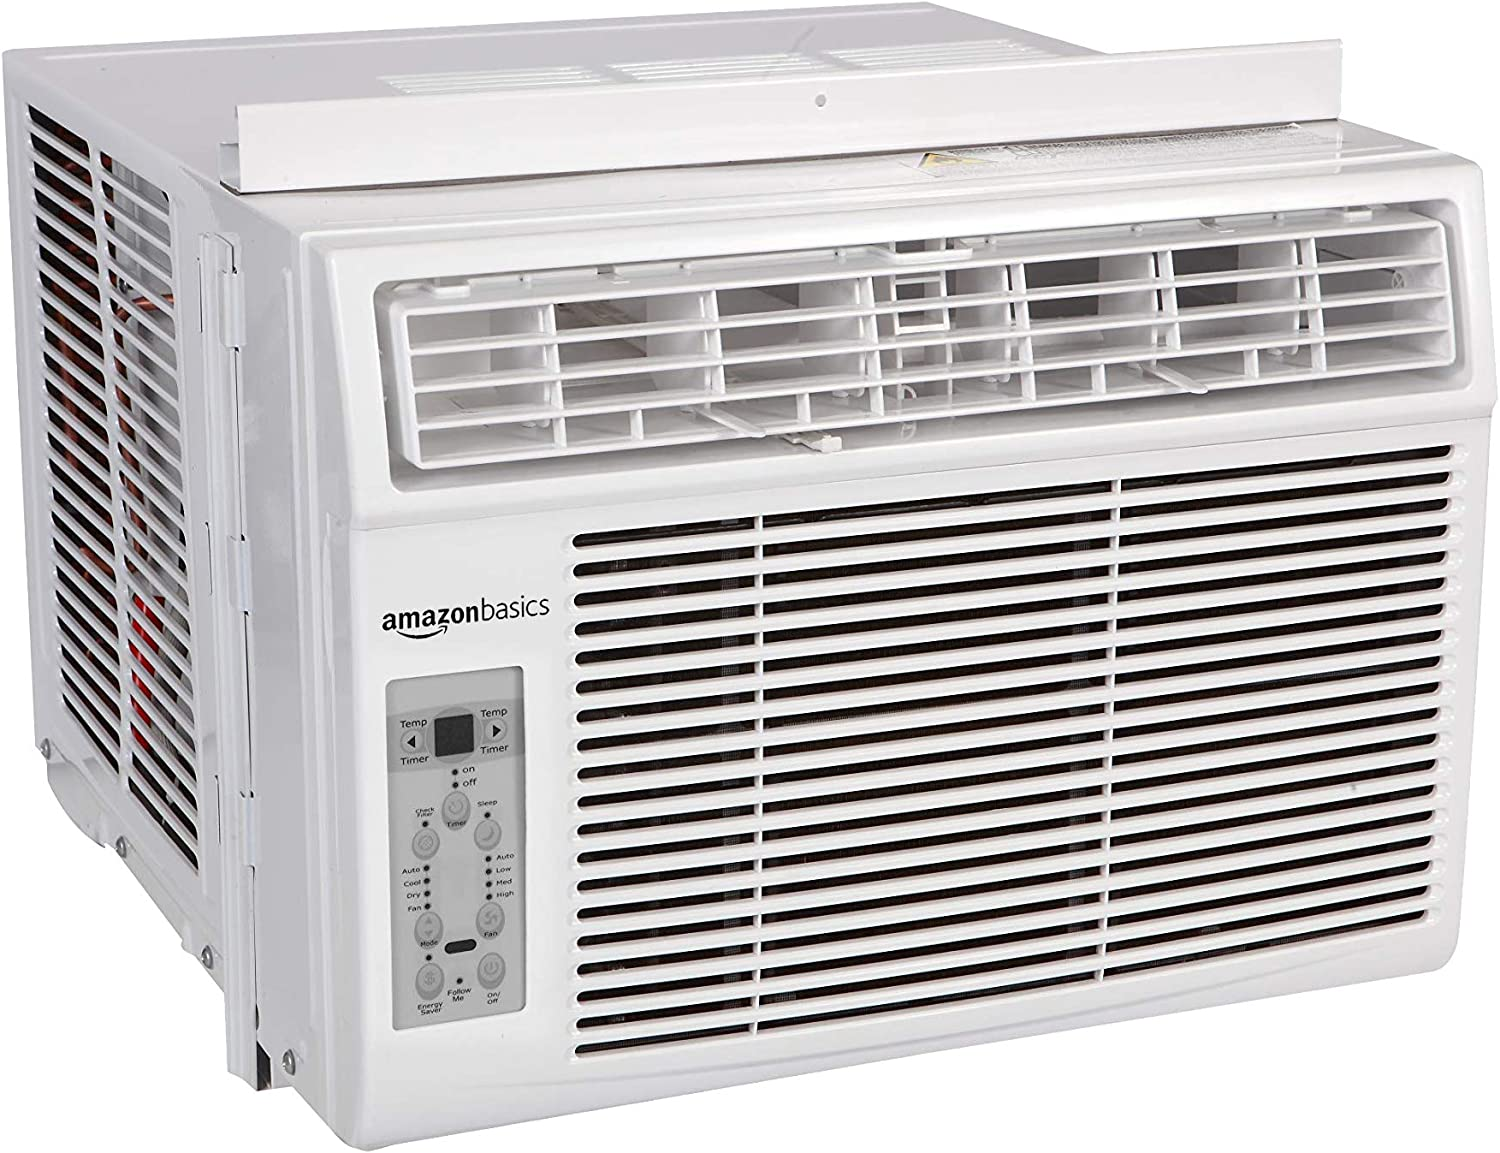 AmazonBasics Window-Mounted Air Conditioner with Remote - Cools 300 Square Feet, 8000 BTU, AC Unit